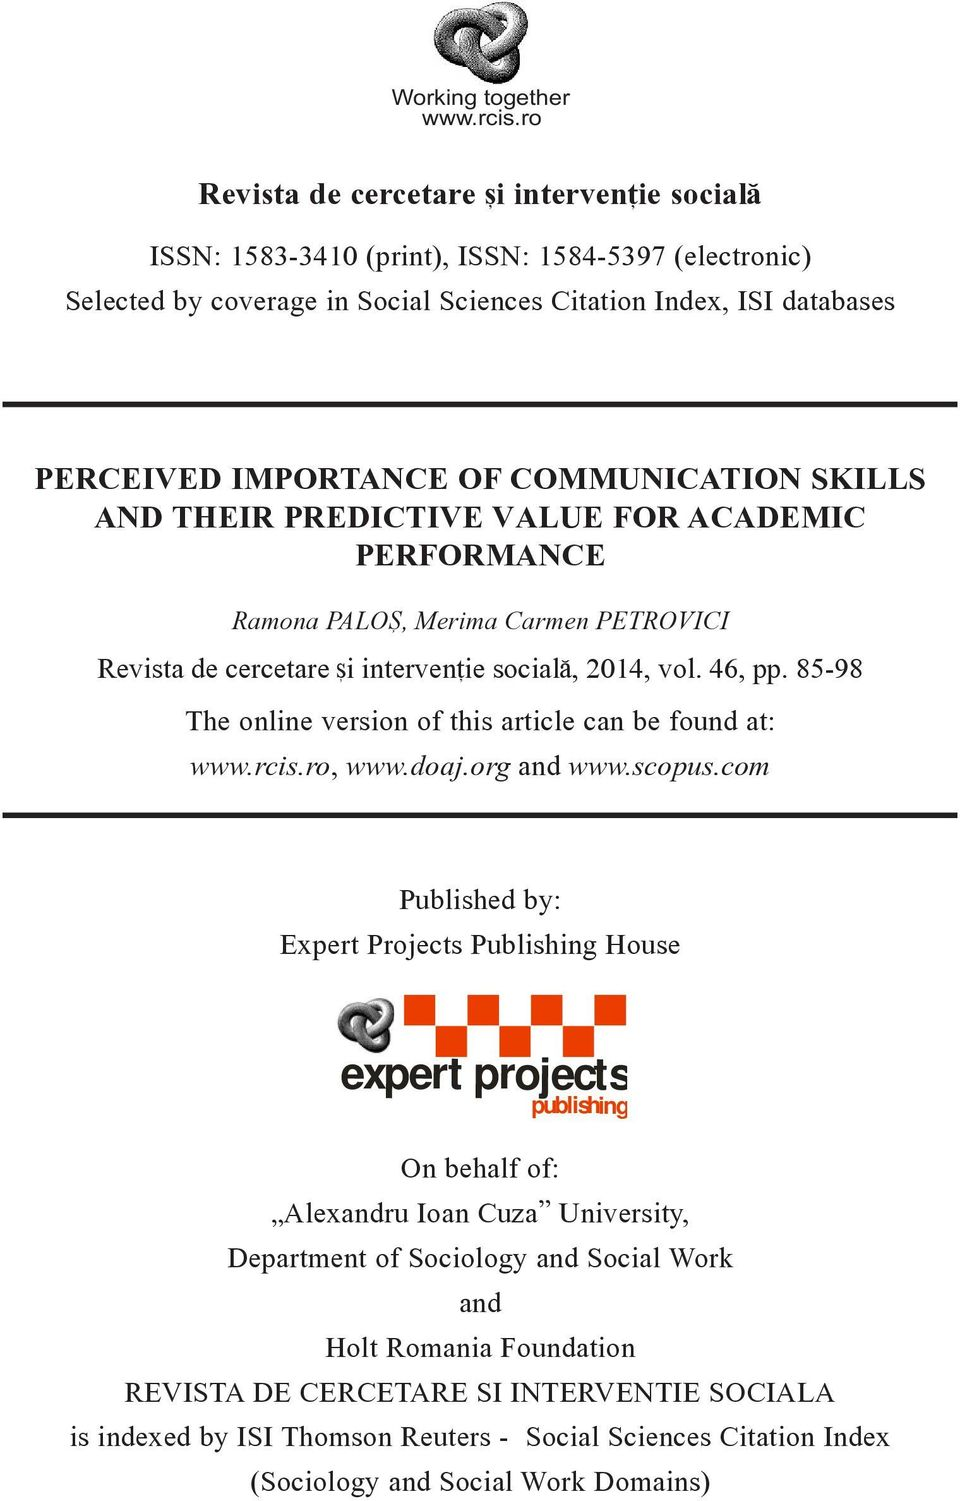 COMMUNICATION SKILLS AND THEIR PREDICTIVE VALUE FOR ACADEMIC PERFORMANCE Ramona PALO{, Merima Carmen PETROVICI Revista de cercetare [i interven]ie social\, 2014, vol. 46, pp.